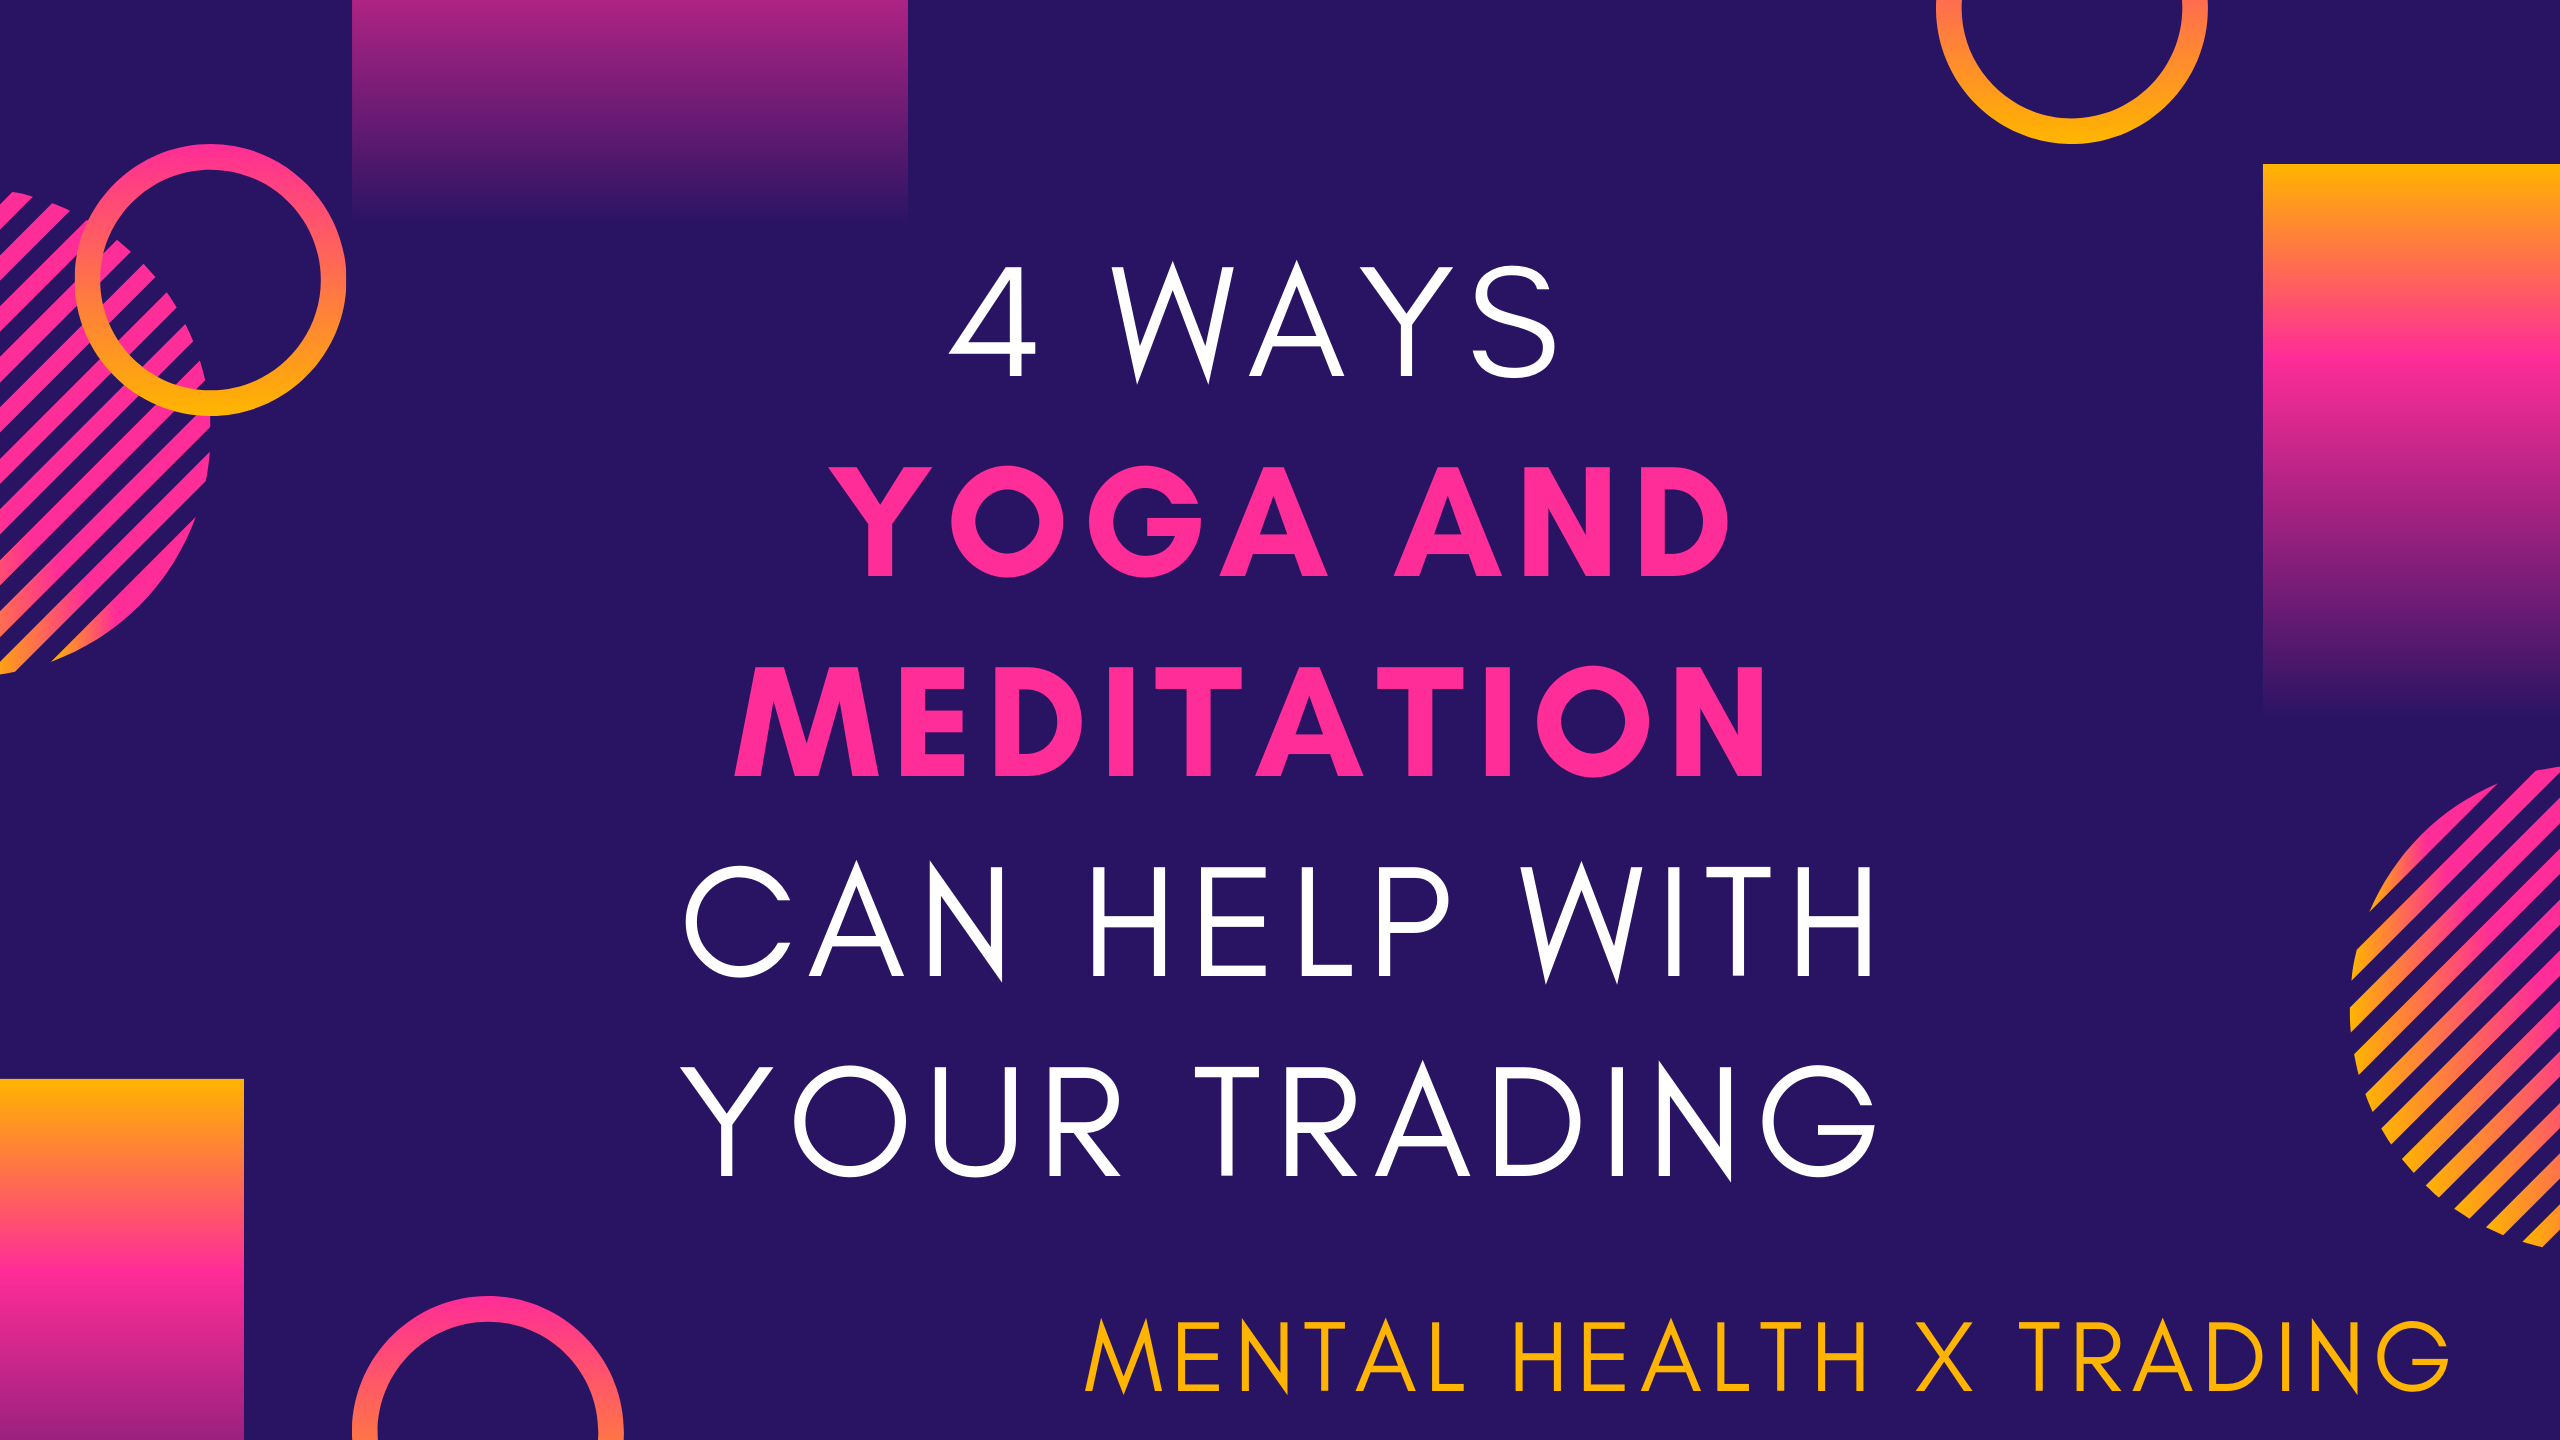 yoga and meditation can help with trading